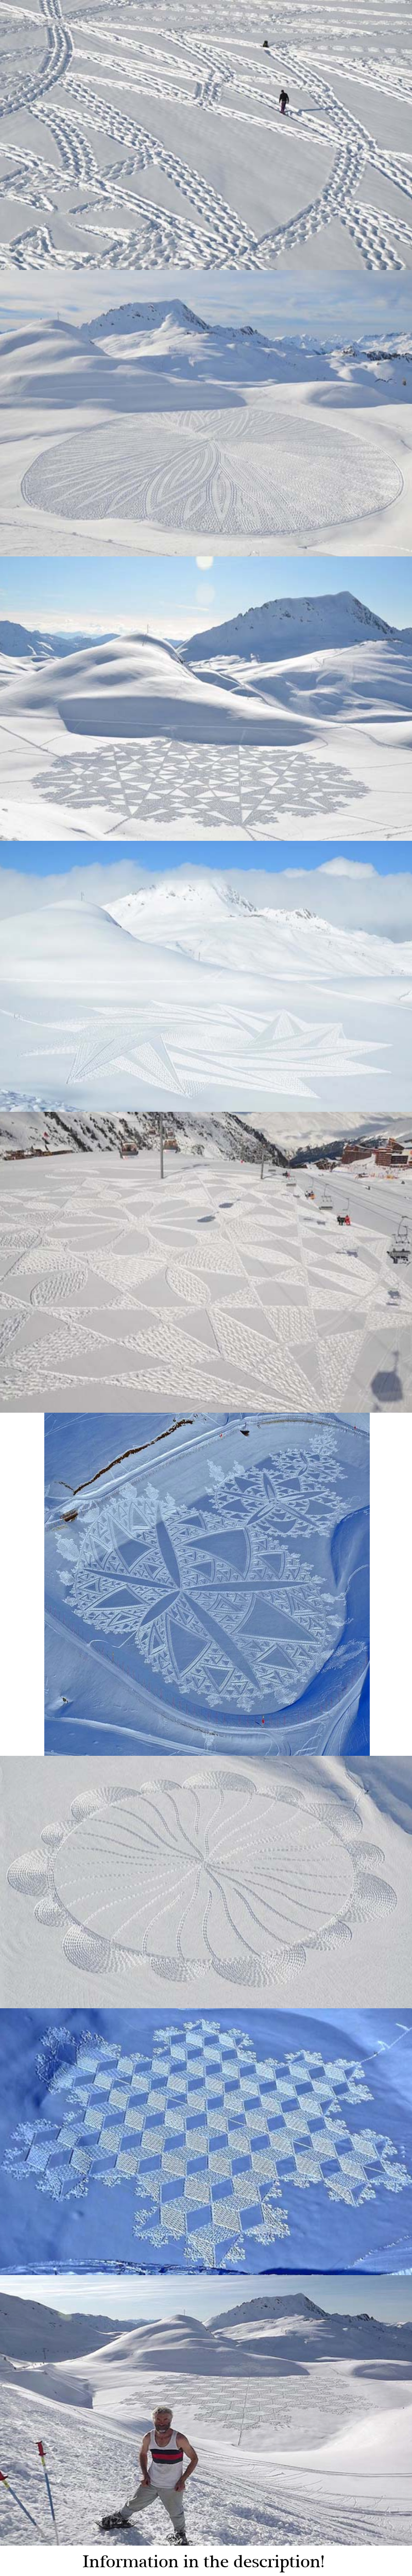 Simon Beck's Snow Art. Simon Beck creates these pieces of art by carefully walking in special shoes, even though he knows they could, and probably will, be lost